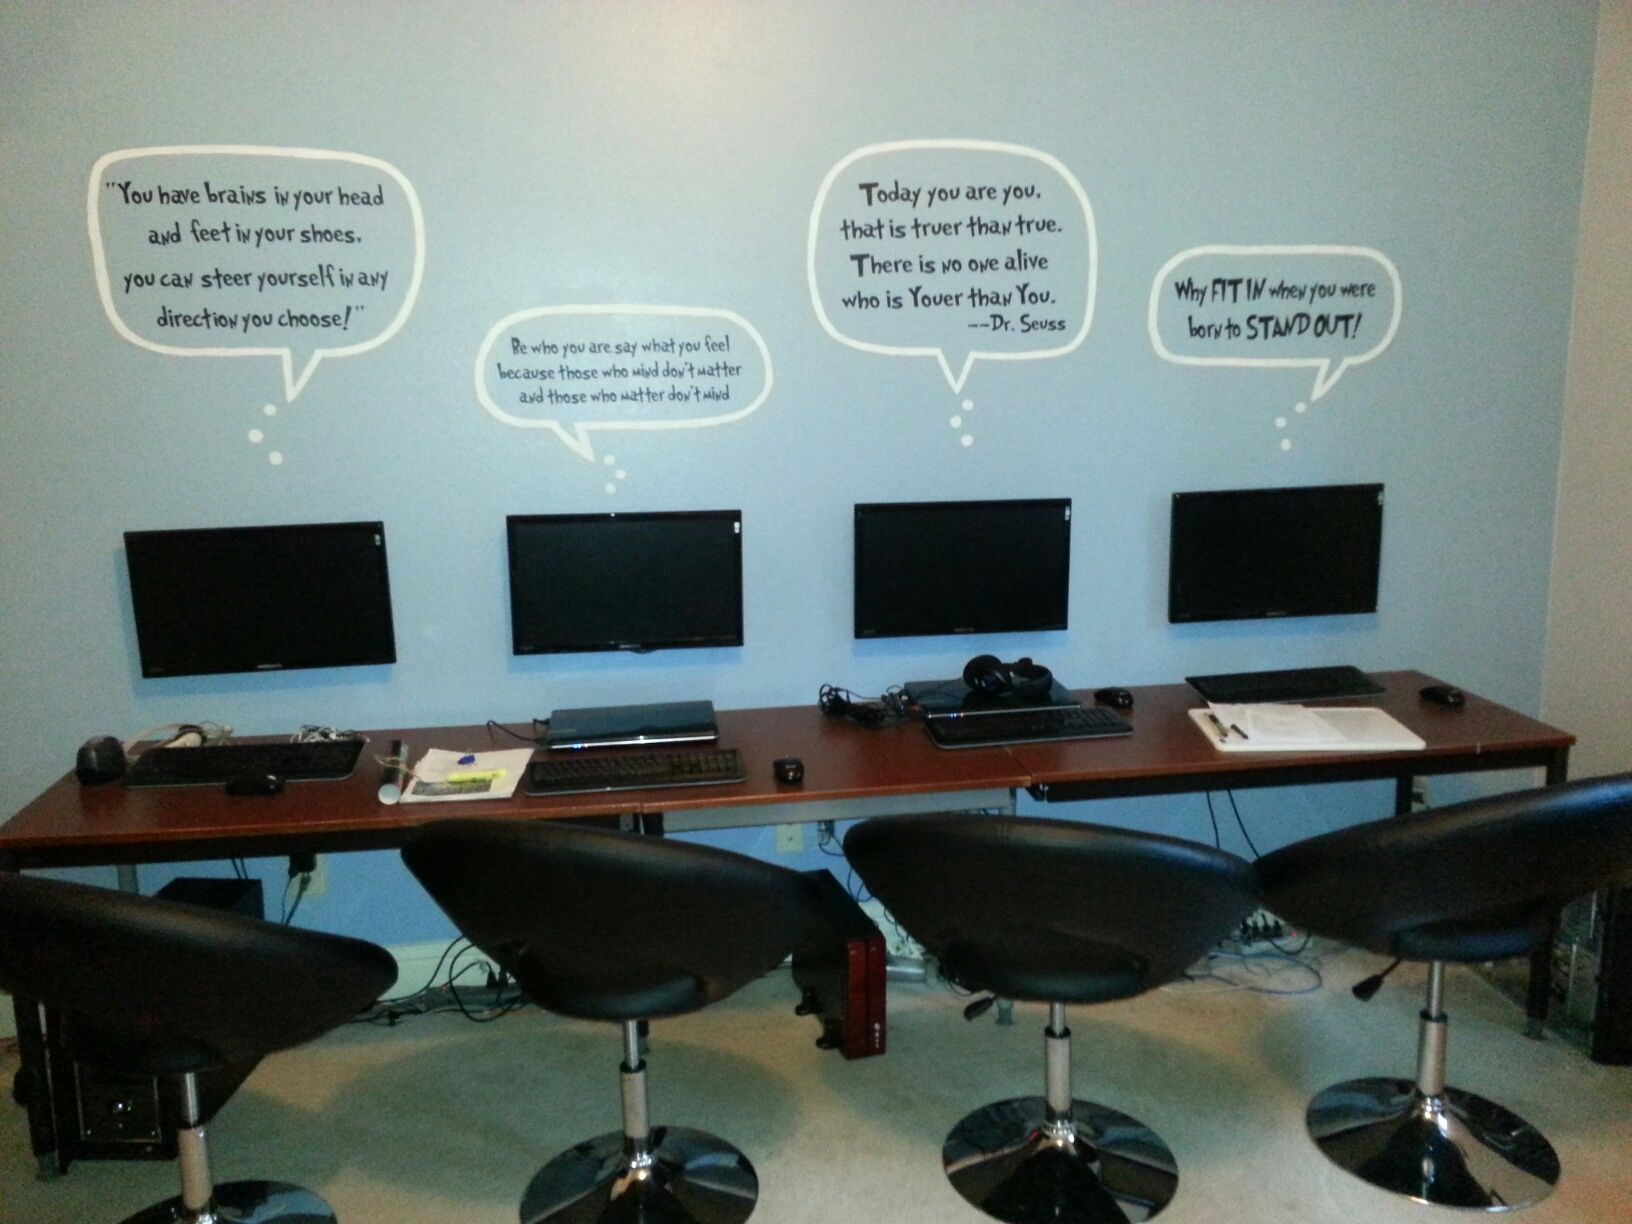 Fun Computer Room Playful Dr Seuss Quotes And Monitors